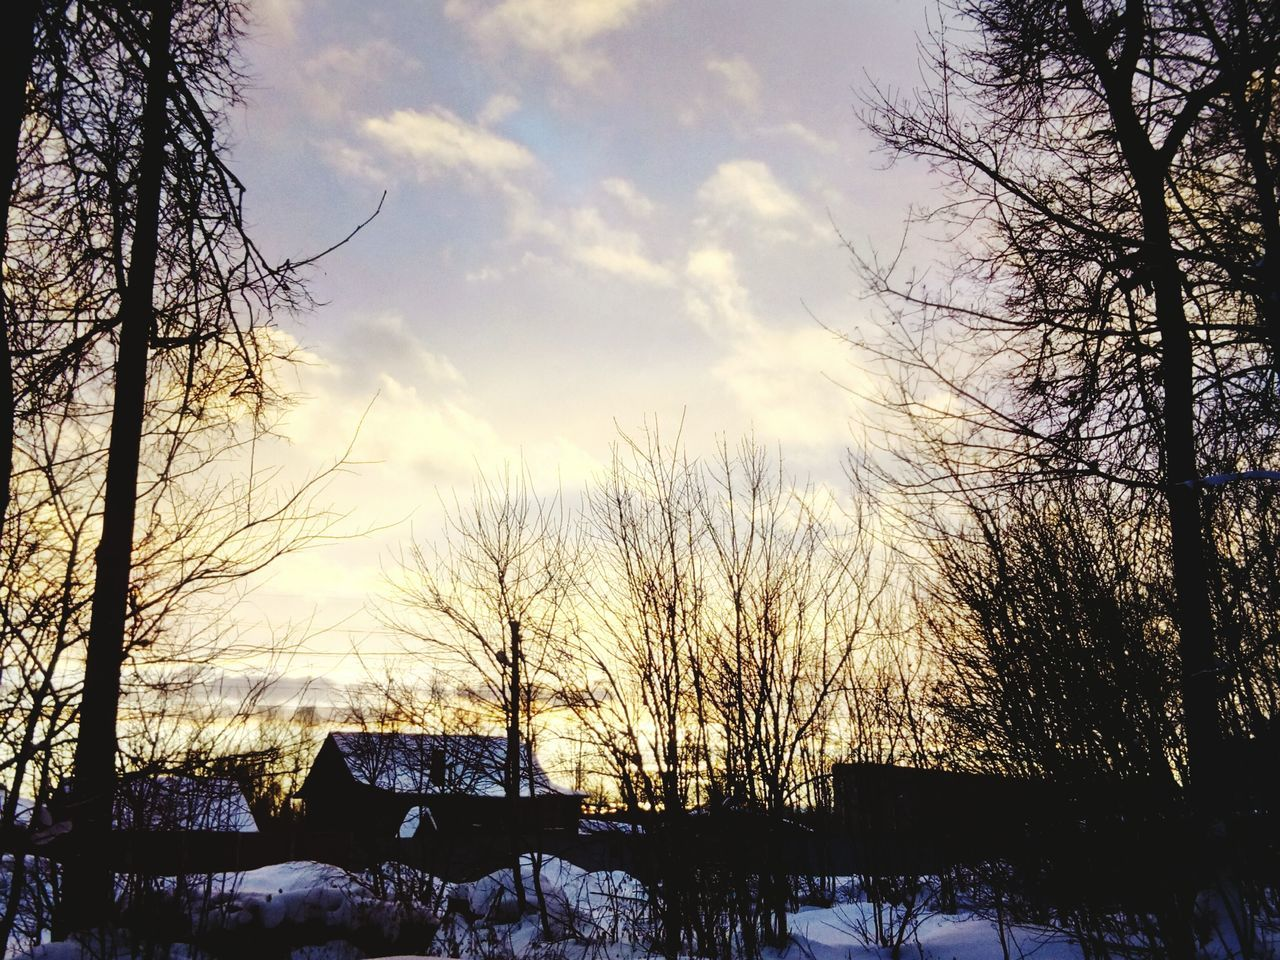 winter, bare tree, tree, snow, sky, nature, cold temperature, sunset, beauty in nature, tranquility, silhouette, no people, outdoors, cloud - sky, scenics, tranquil scene, branch, low angle view, day